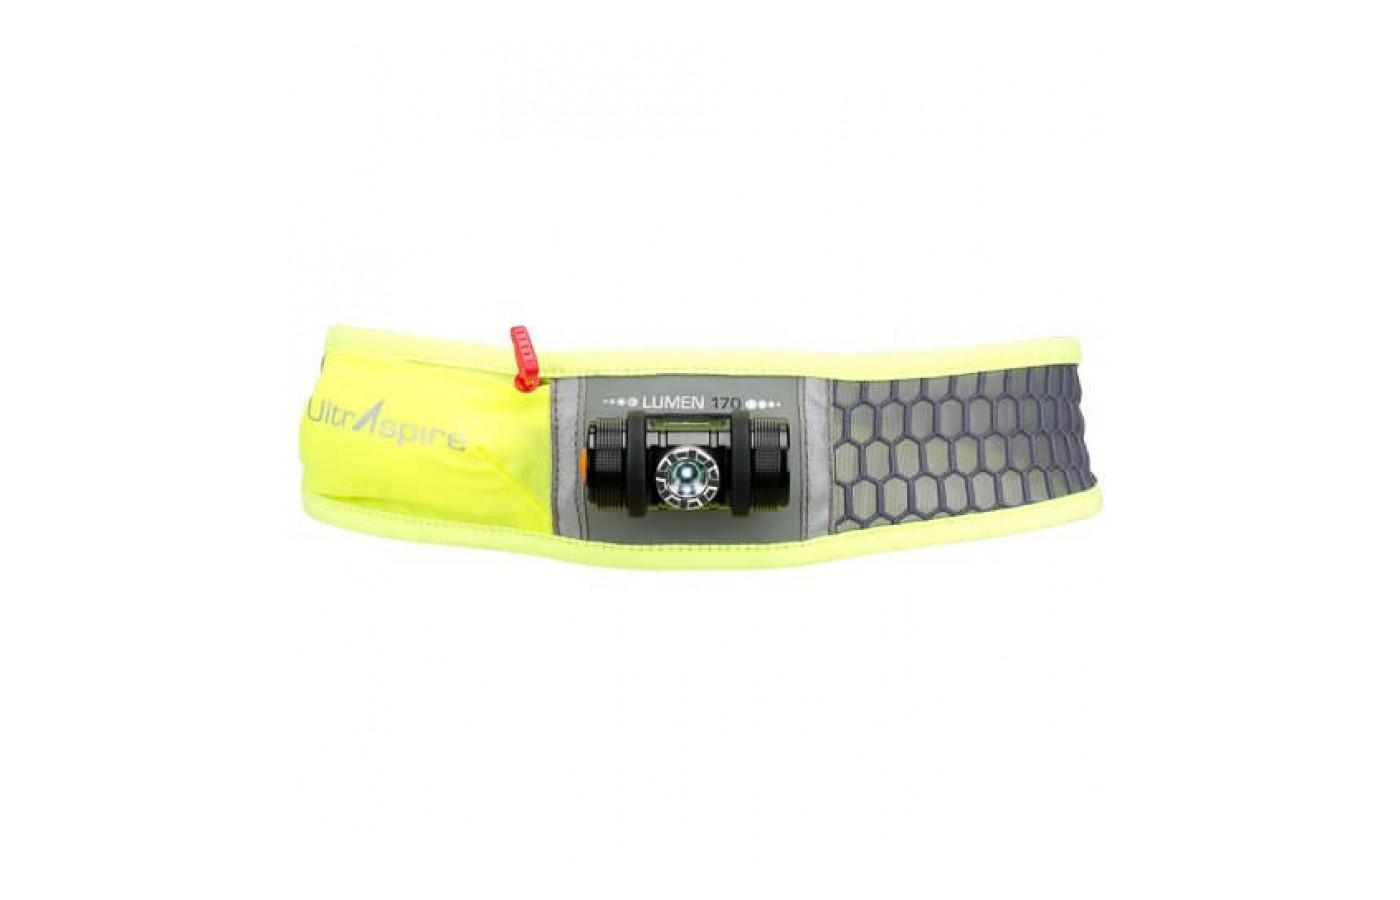 The UltrAspire Lumen 600 is an excellent light source for night time trail running.